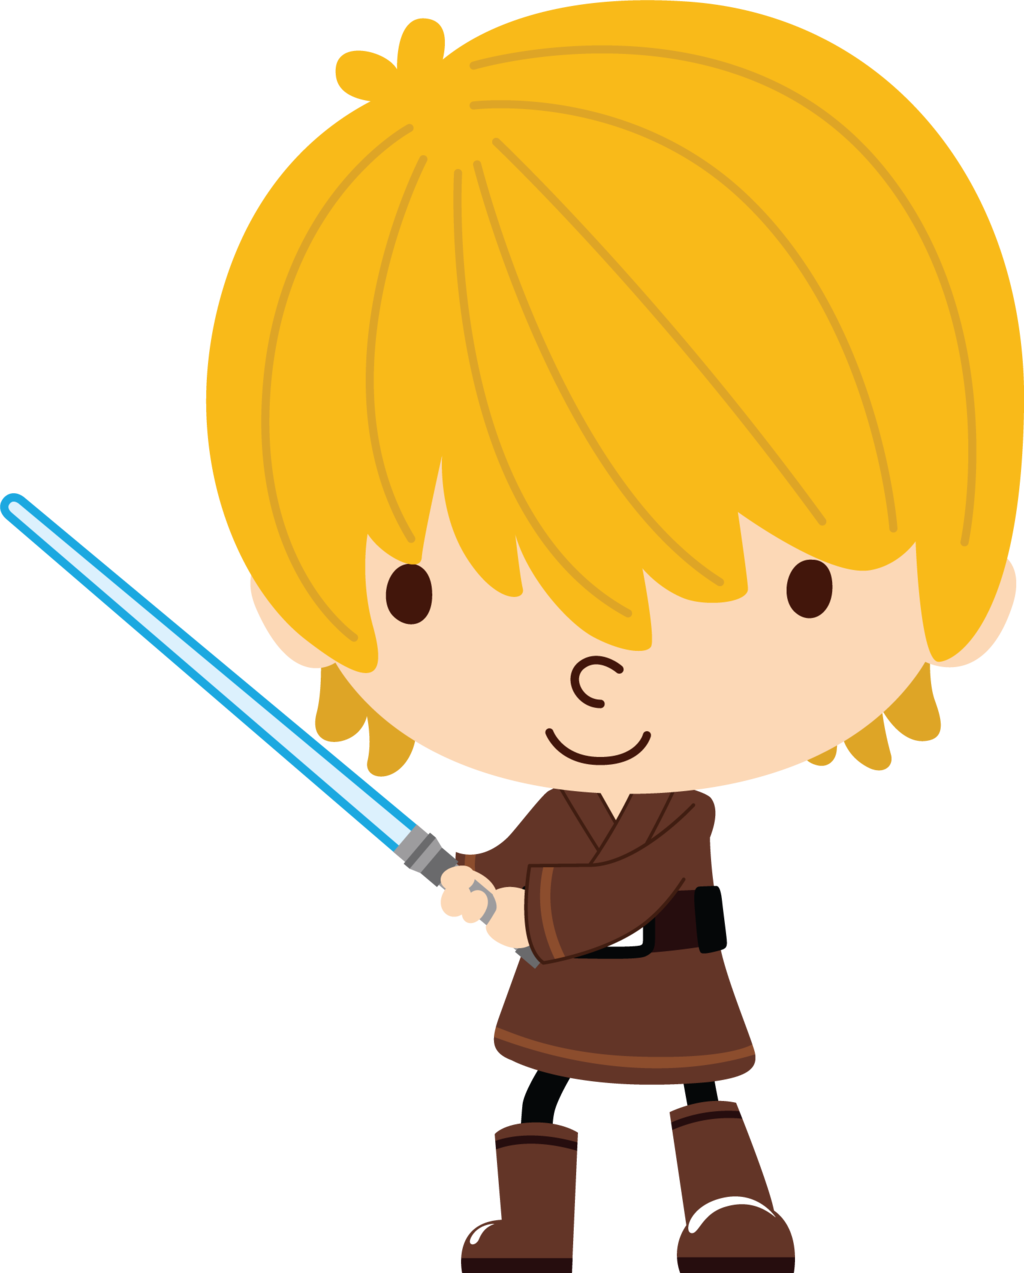 Star wars clipart luke skywalker svg freeuse Star Wars Luke Skywalker By Chrispix326 svg freeuse